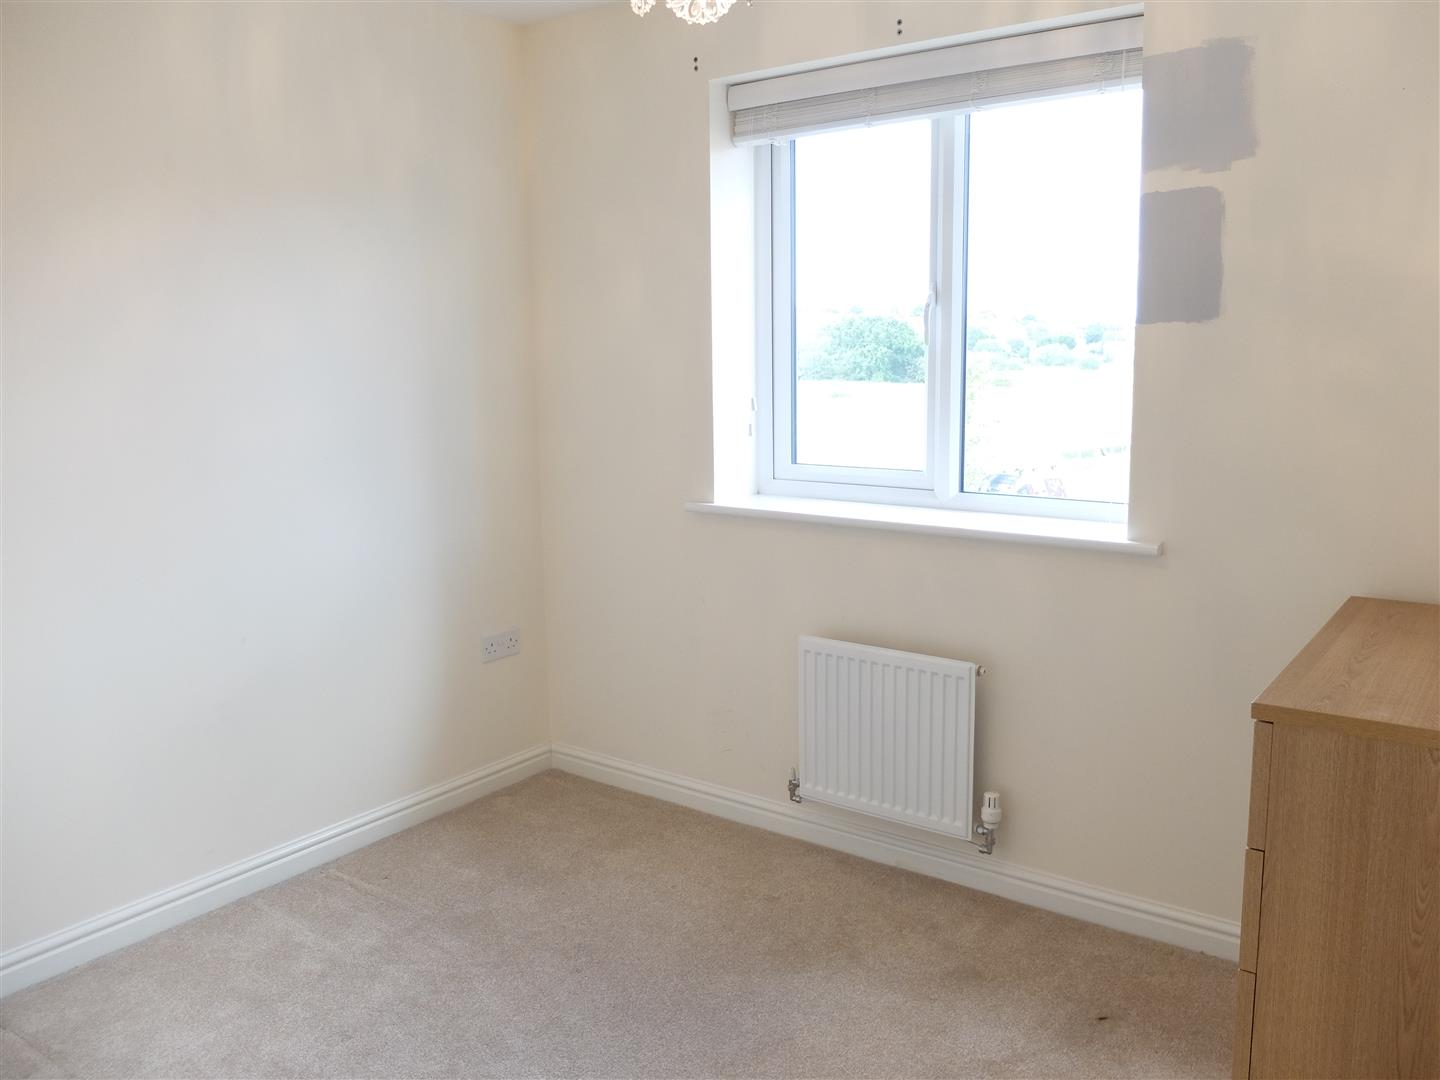 3 Bedrooms House - Semi-Detached On Sale 26 Arnison Close Carlisle 150,000